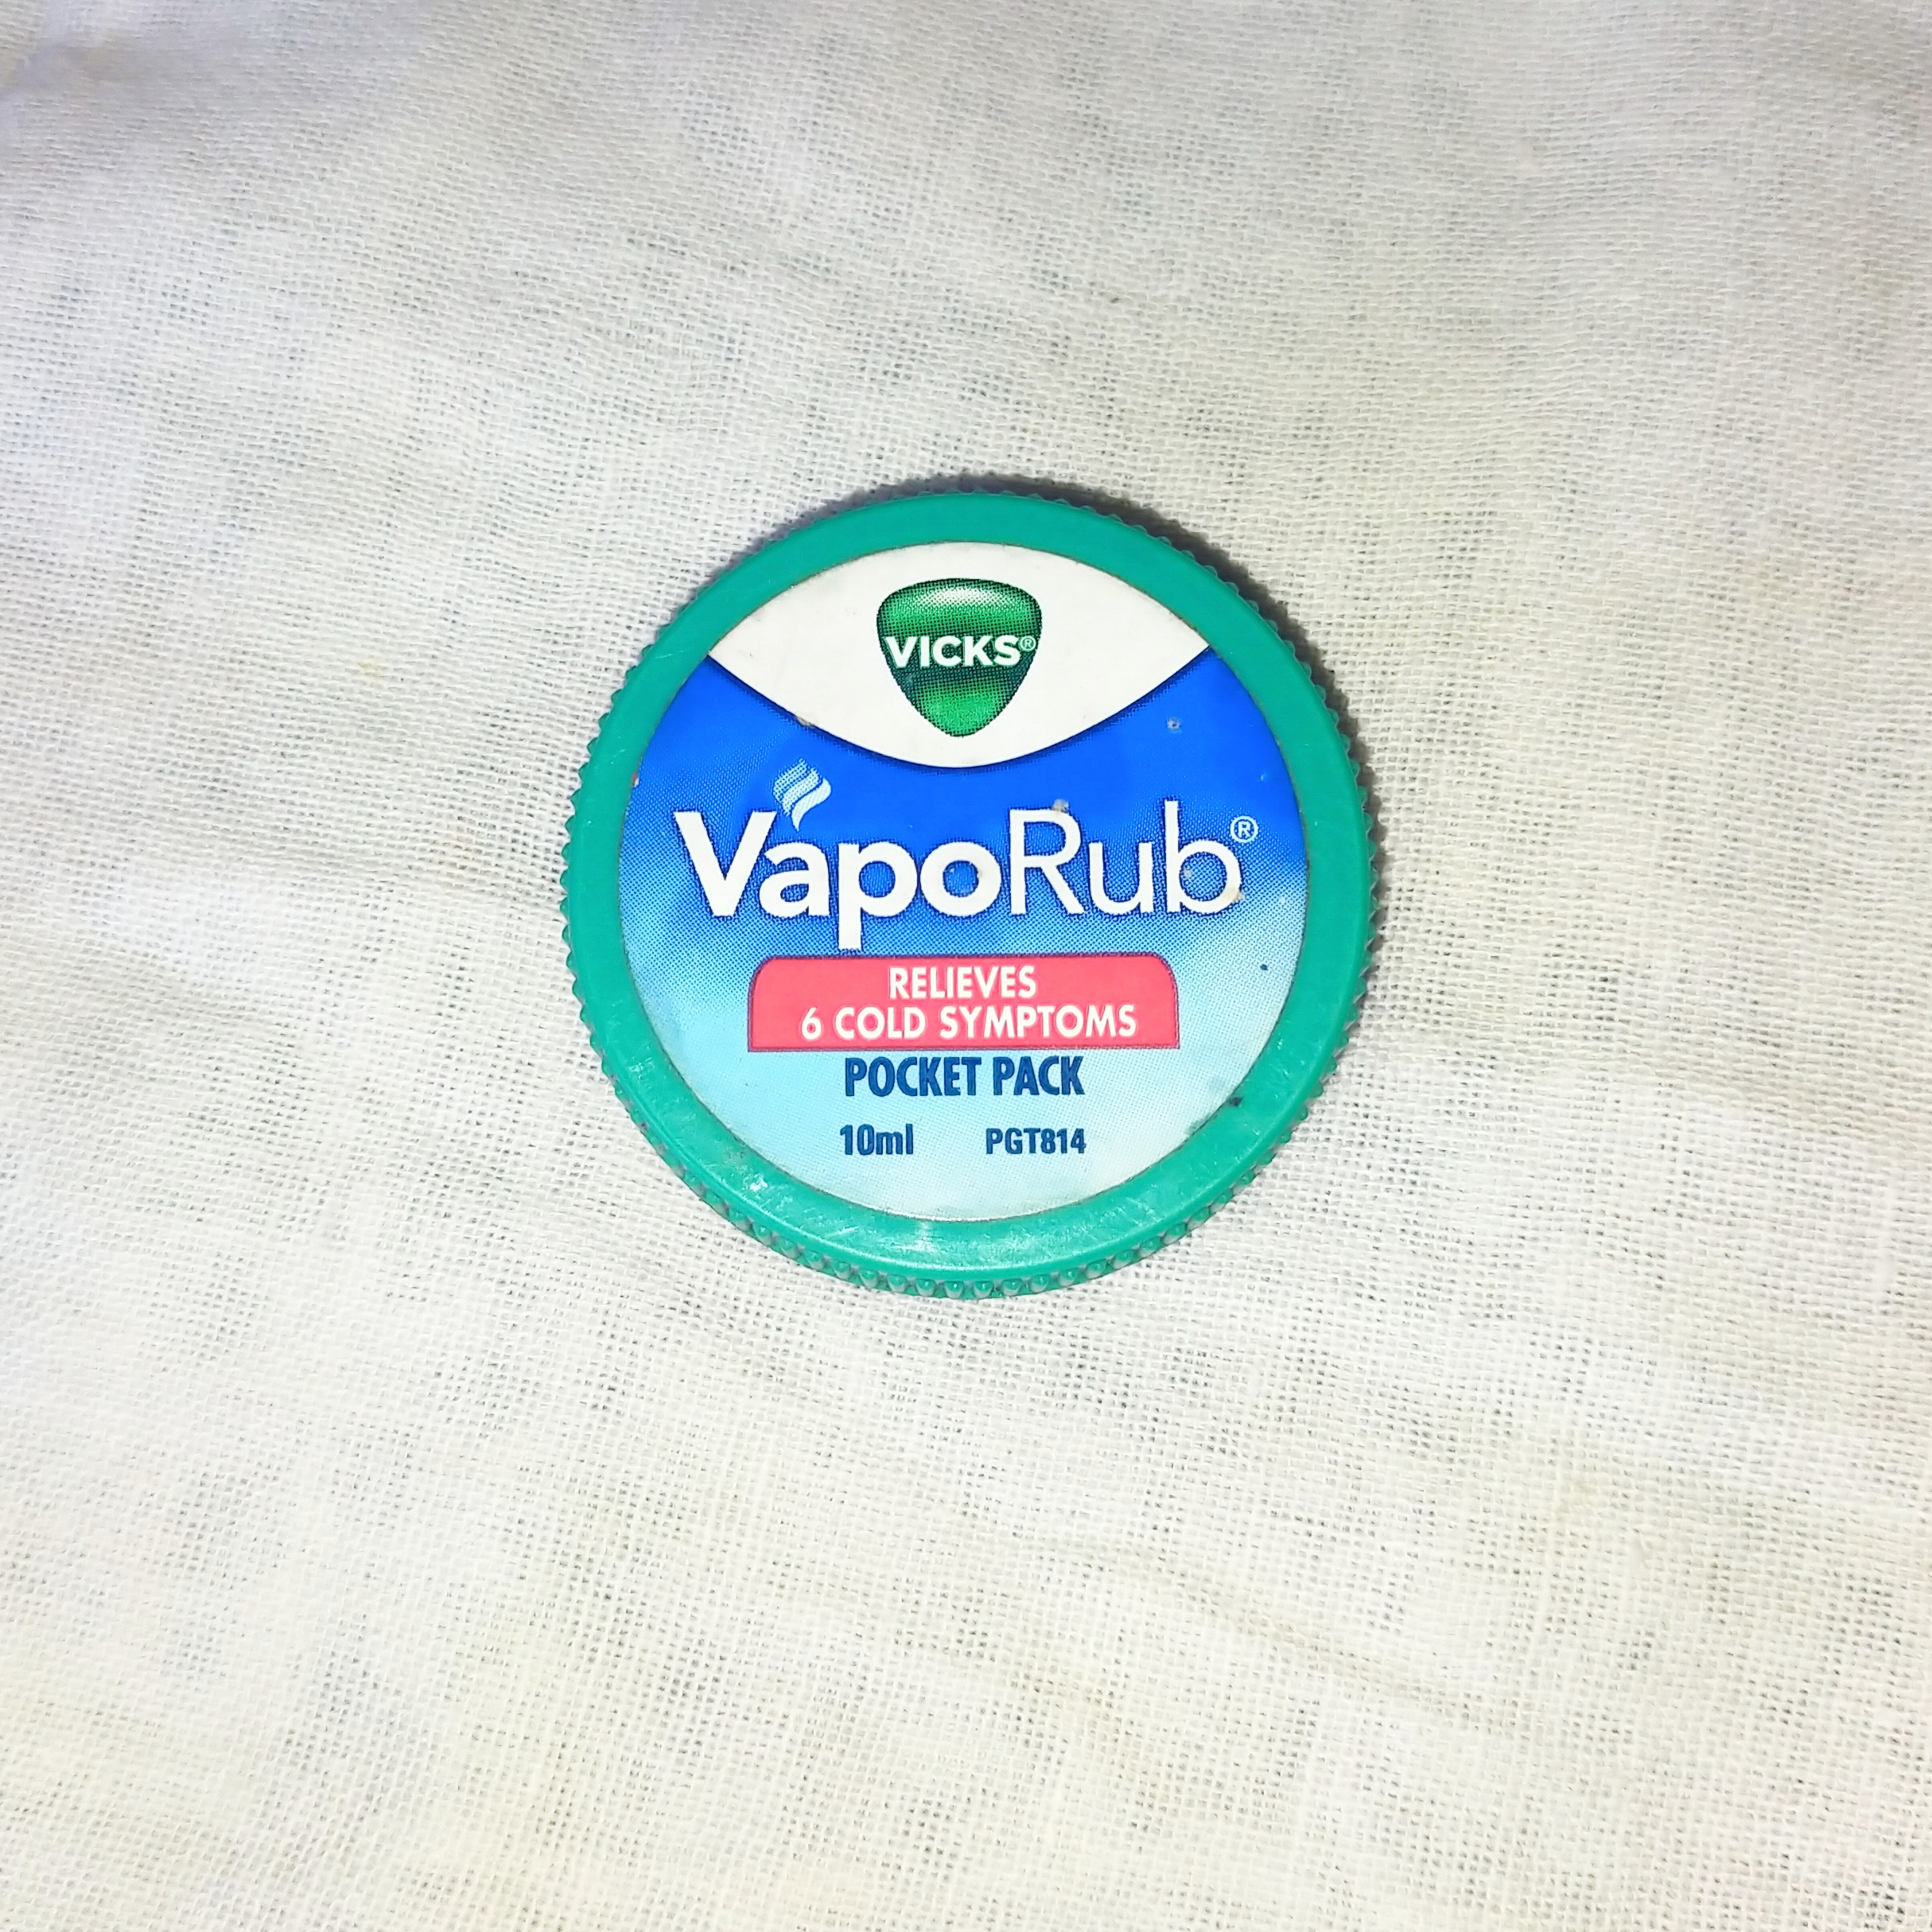 Vicks vaporub for cold